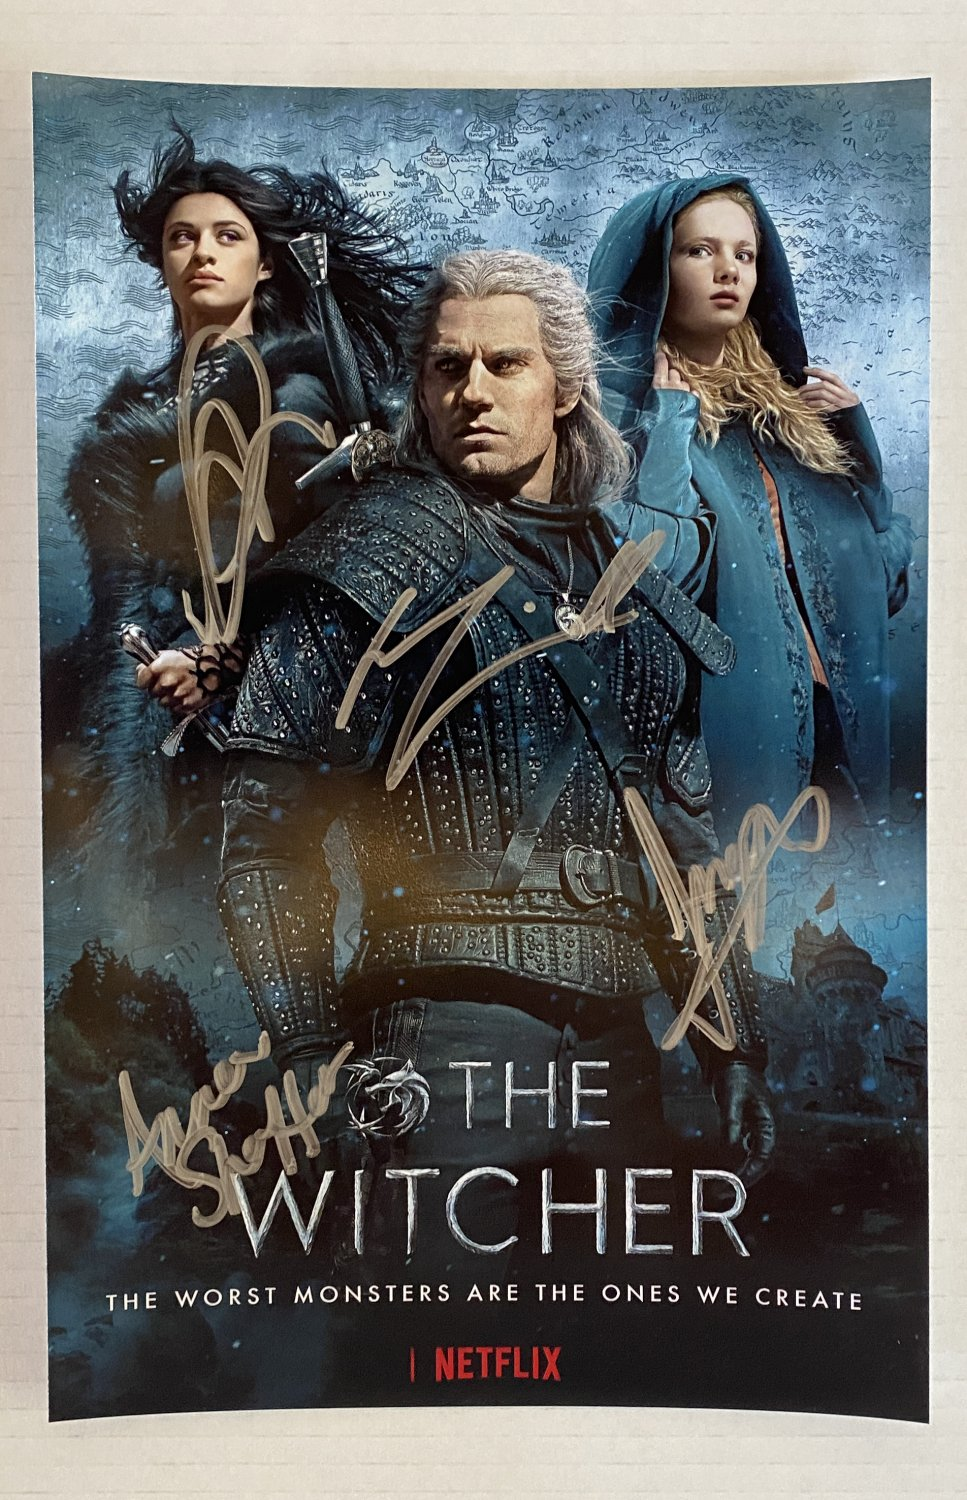 The Witcher cast signed autographed 8x12 photo Henry Cavill Anna Shaffer autographs